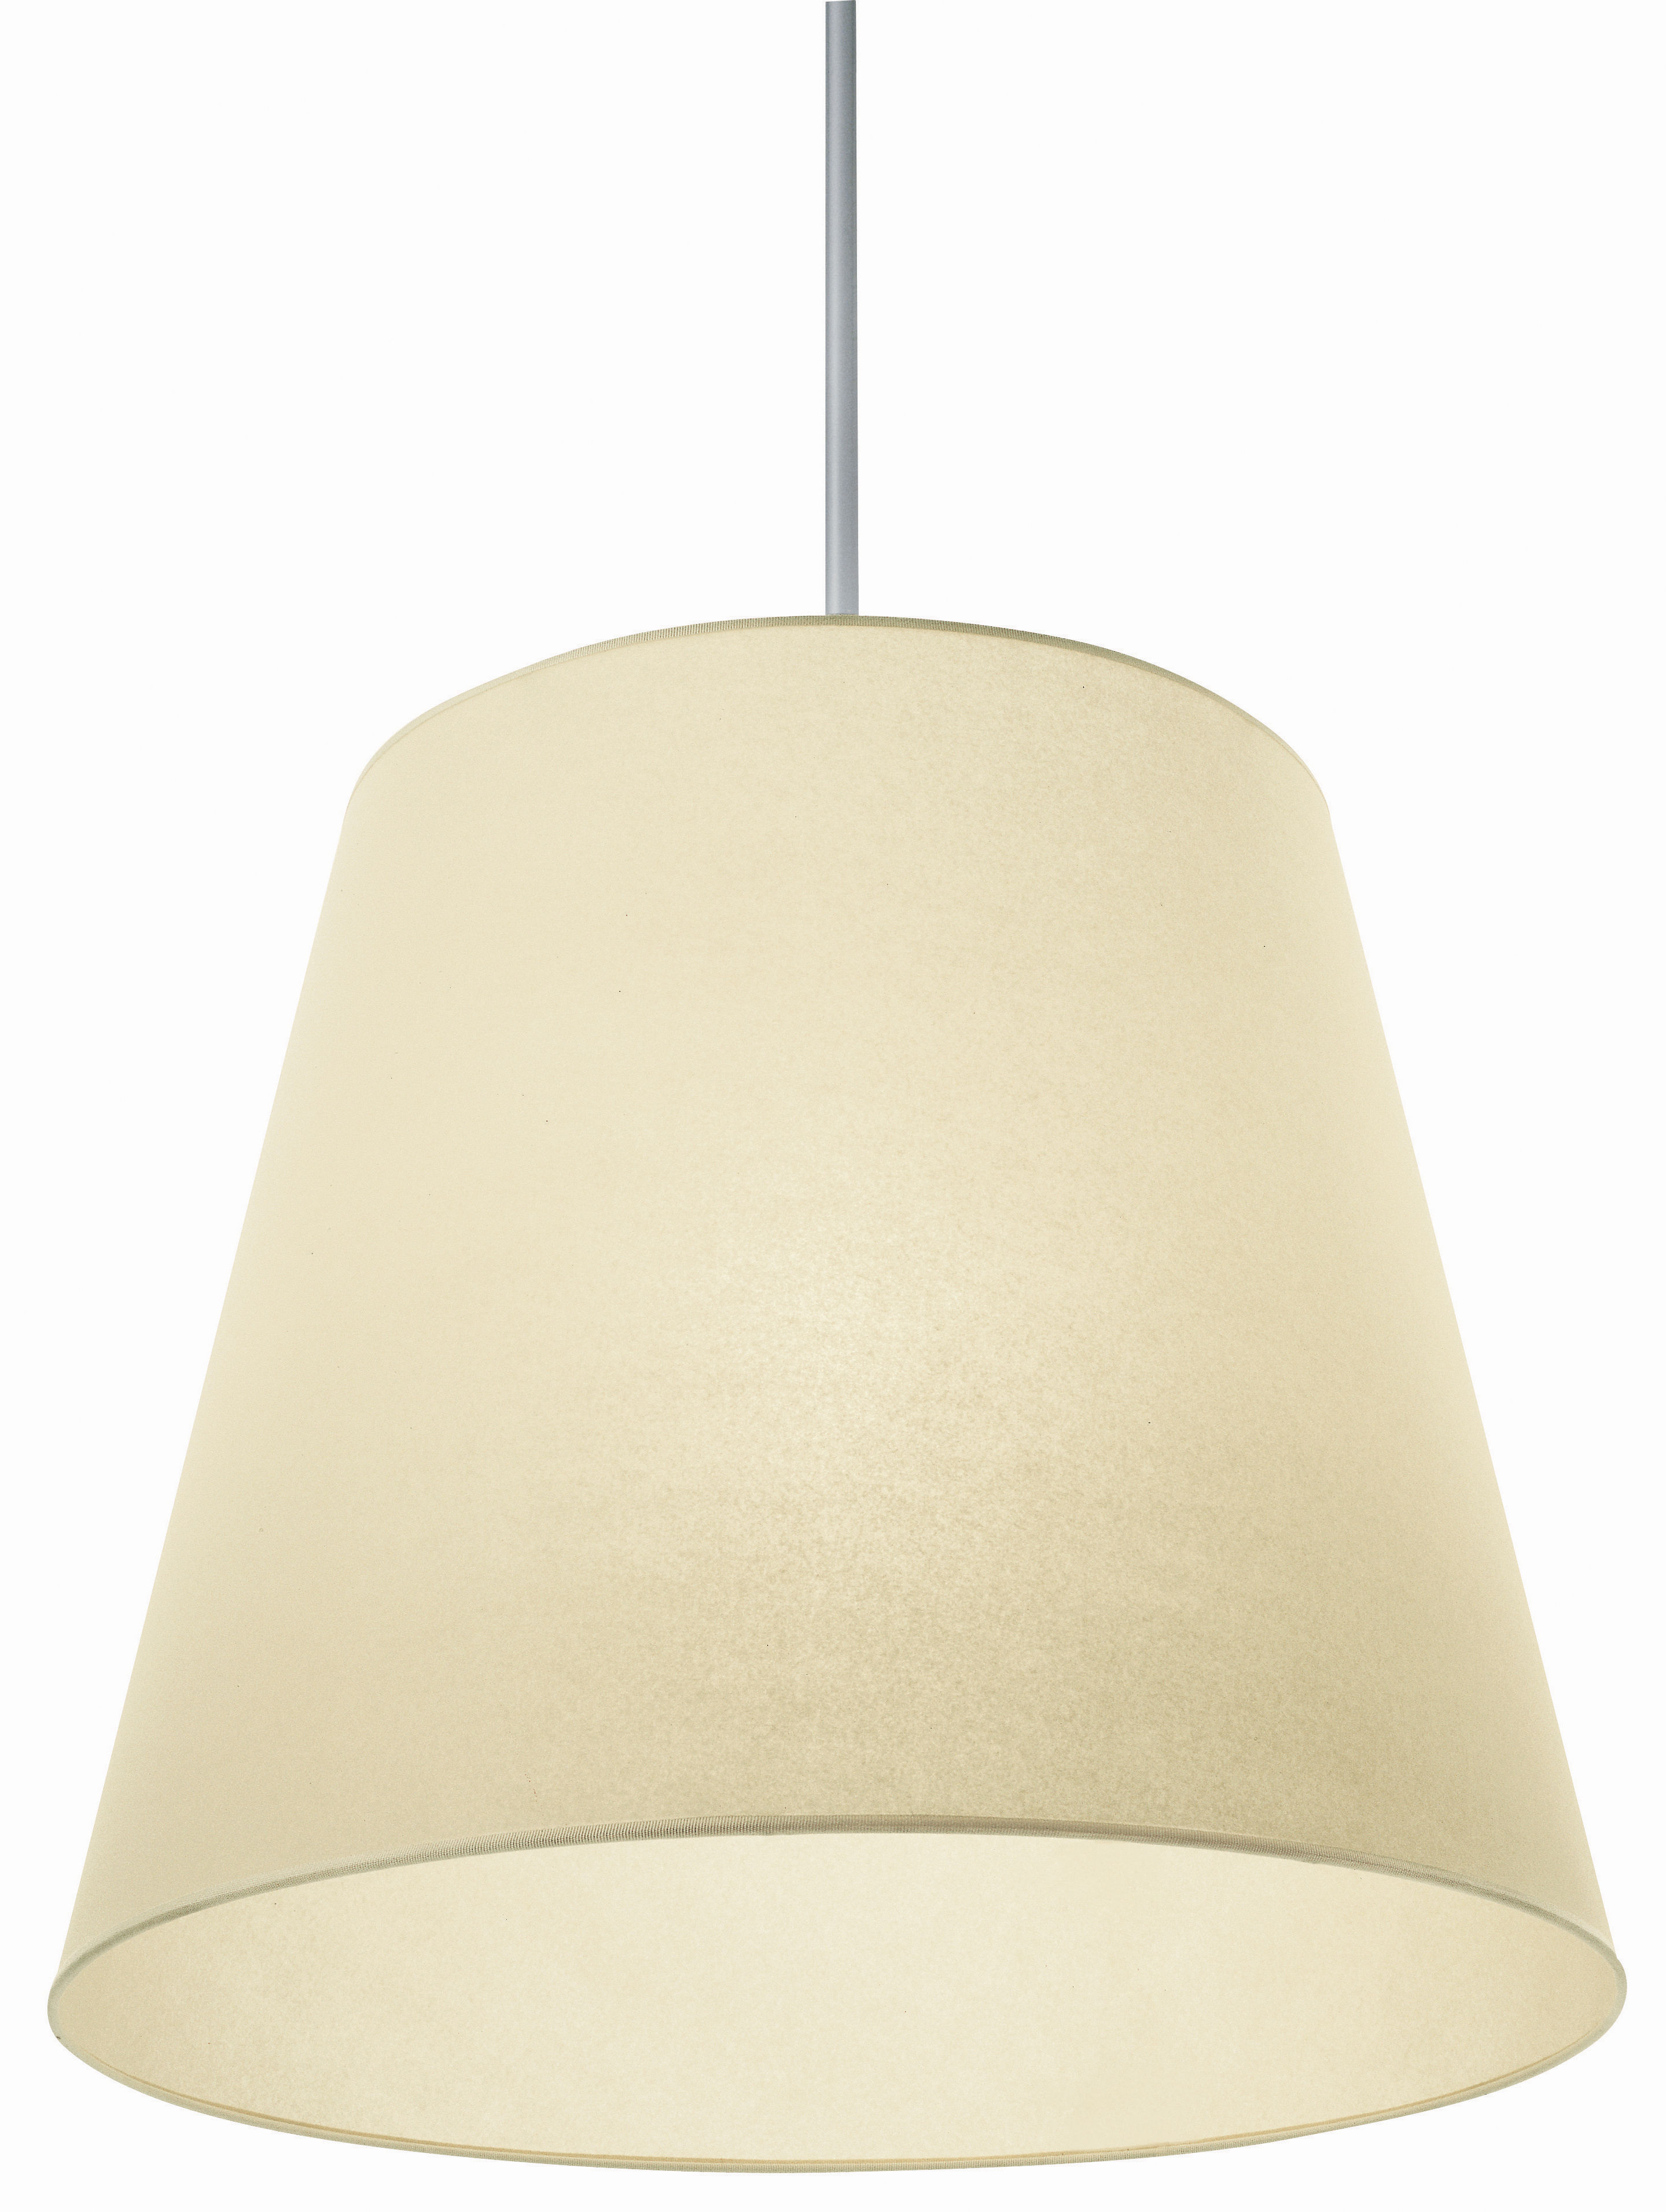 Lighting - Pendant Lighting - Gilda Pendant by Pallucco - Ivory synthetic paper - Synthetic parchment paper